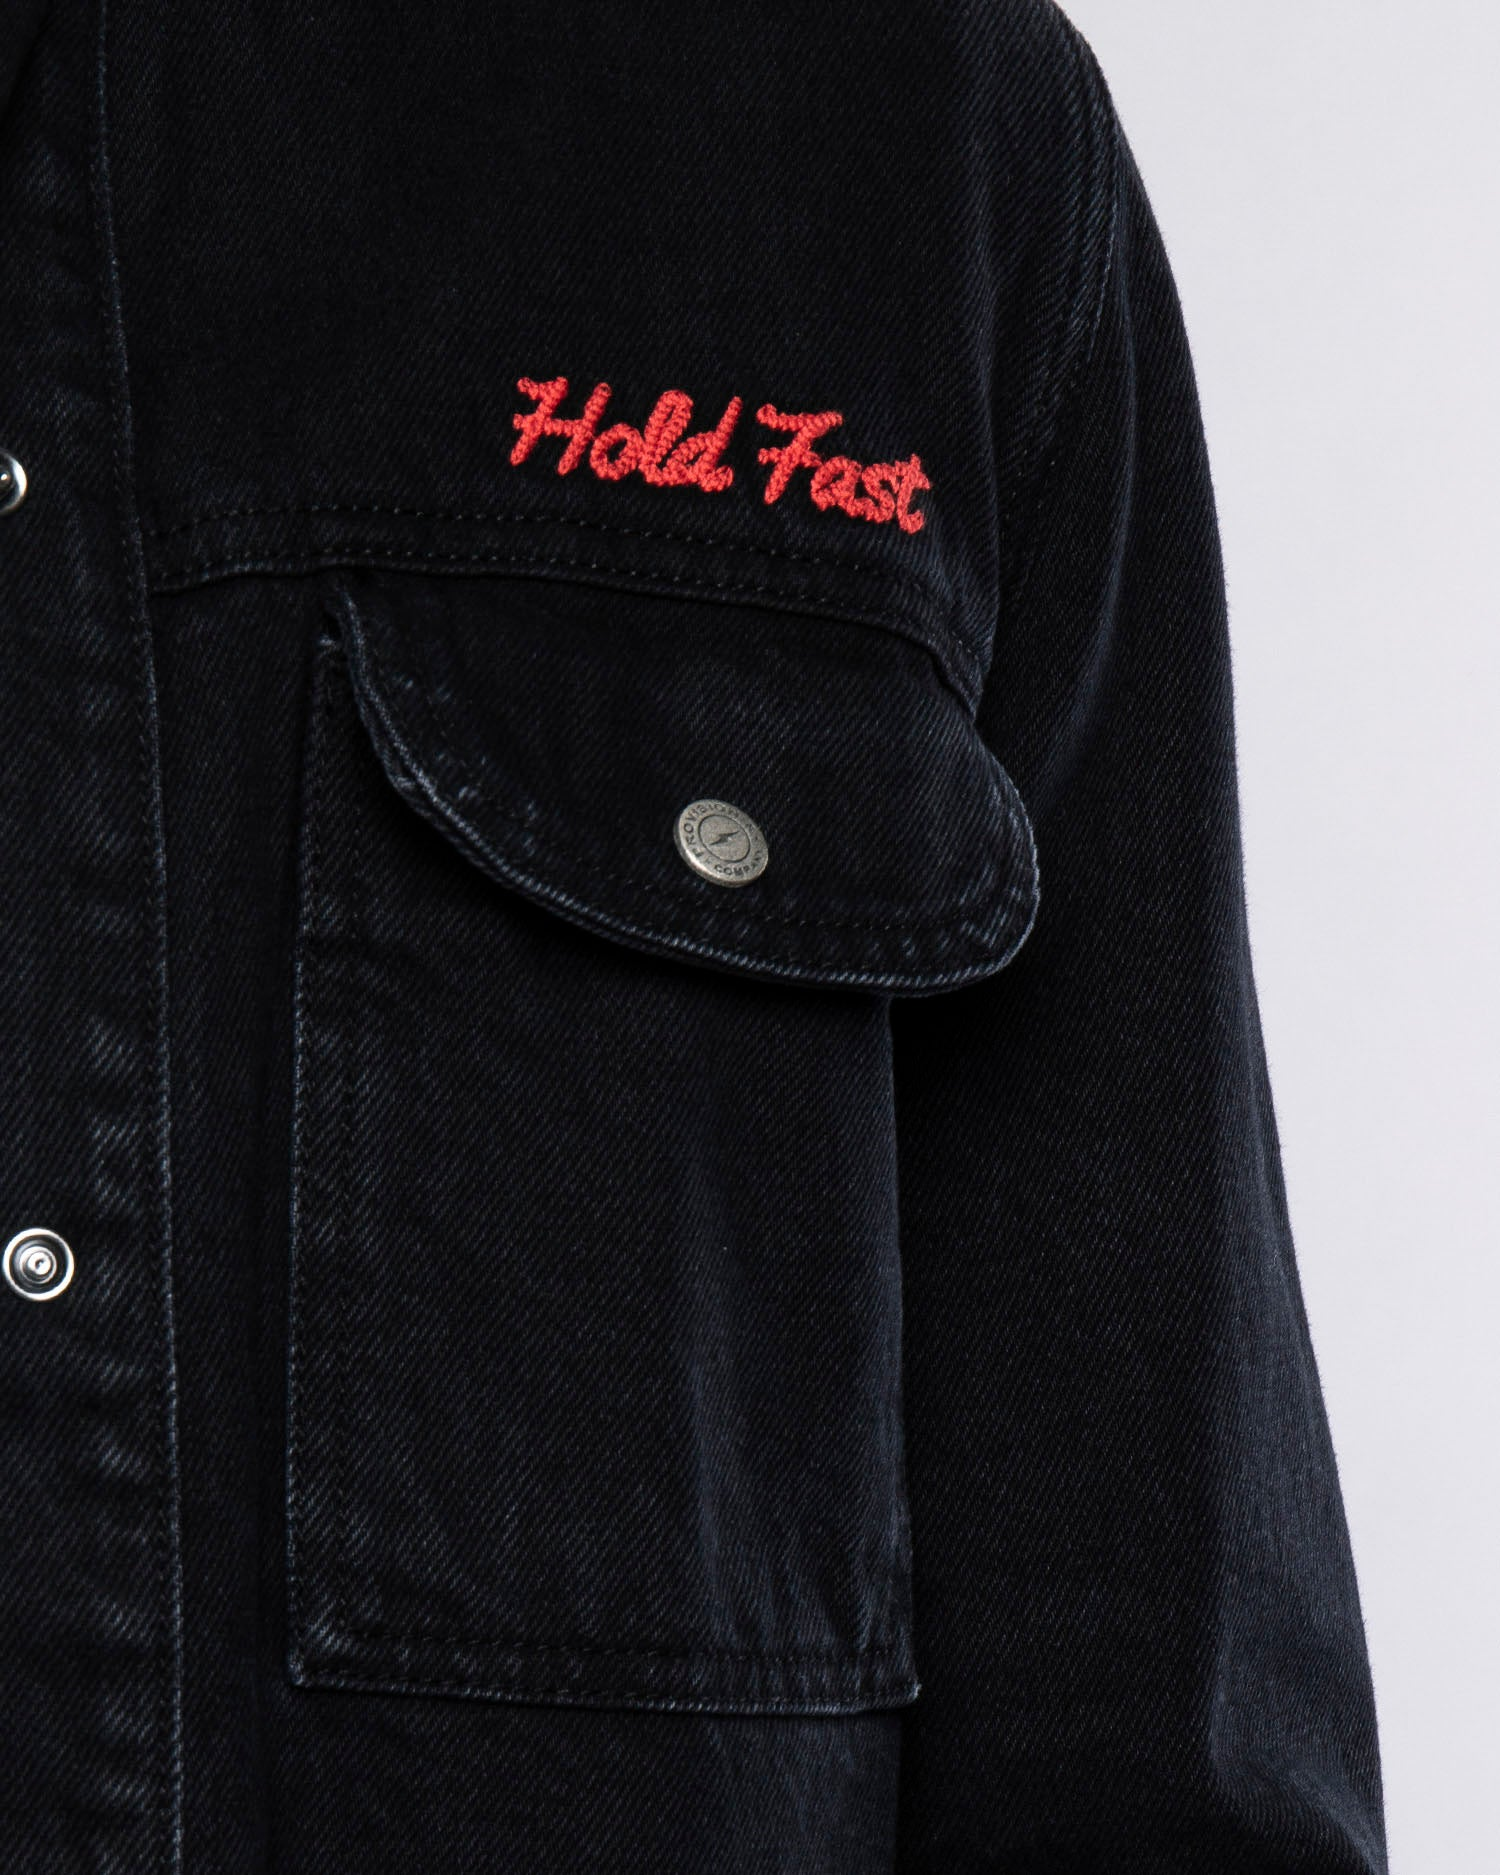 Mens Hold Fast Black Embroidered Overshirt